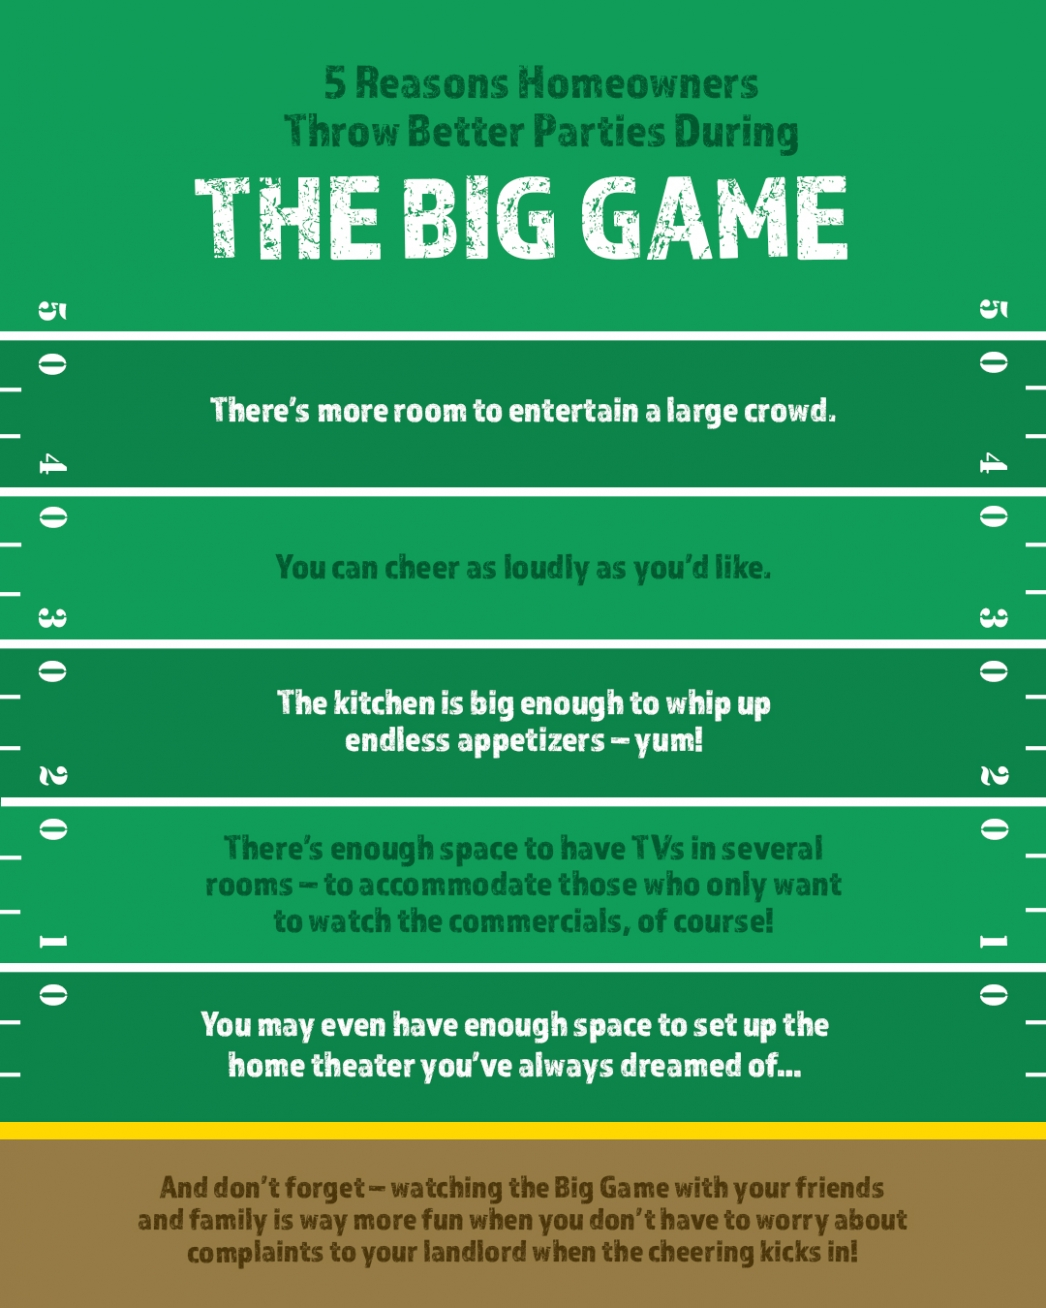 5 Reasons Homeowners Throw Better Parties During the Big Game [INFOGRAPHIC] | MyKCM